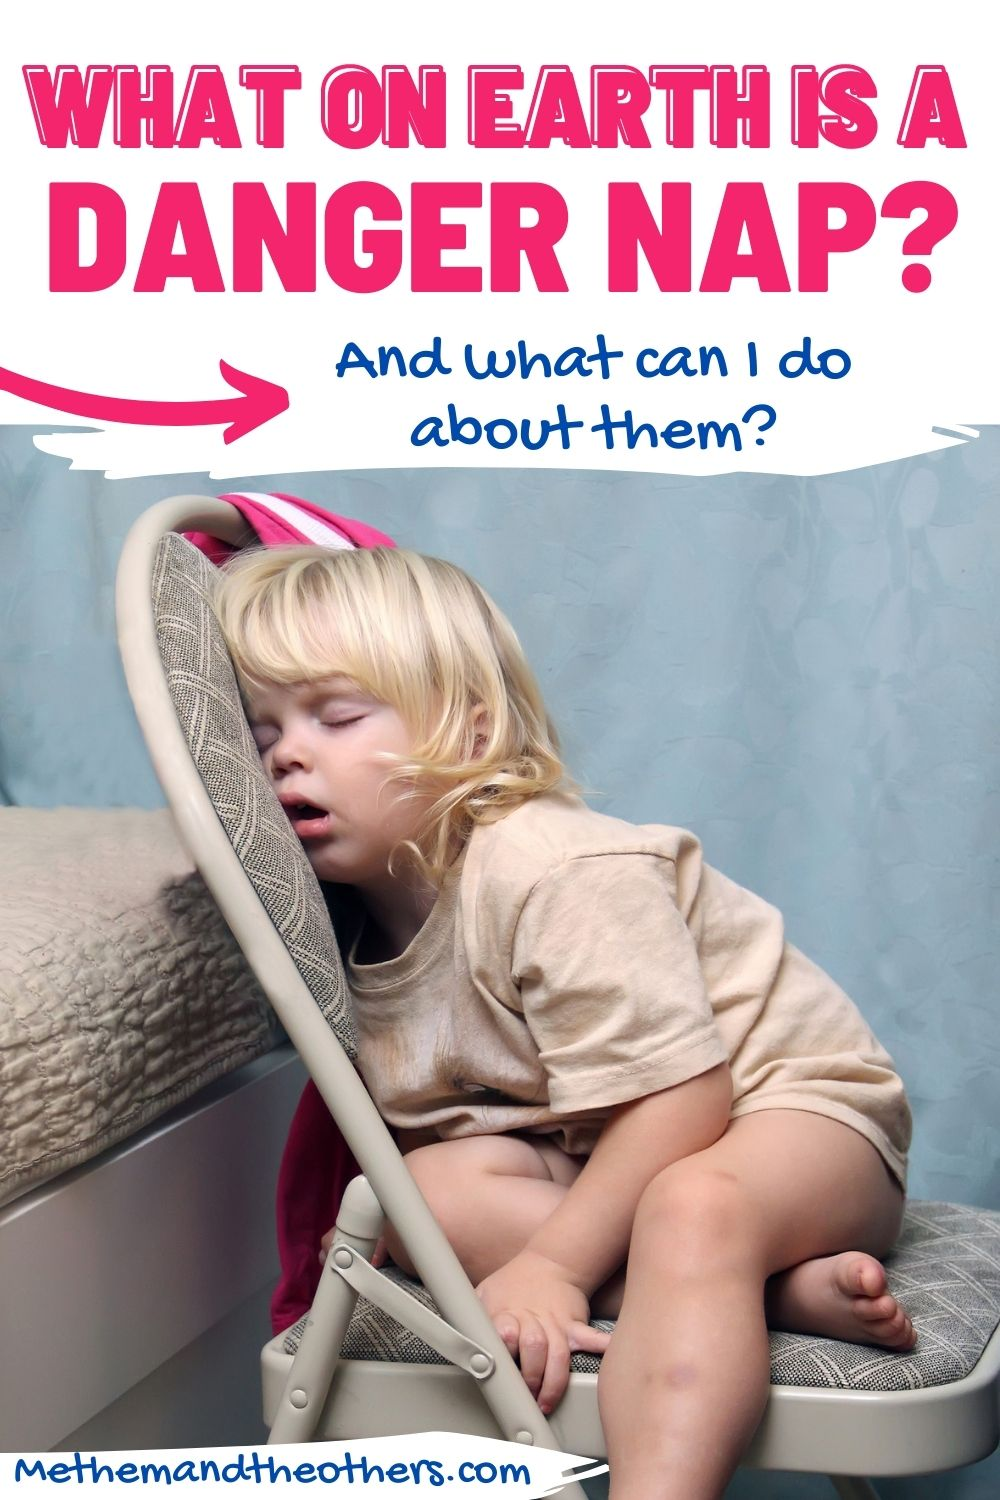 Child asleep on a chair. Chair text reads: what on earth is a danger nap and what should I do about it.